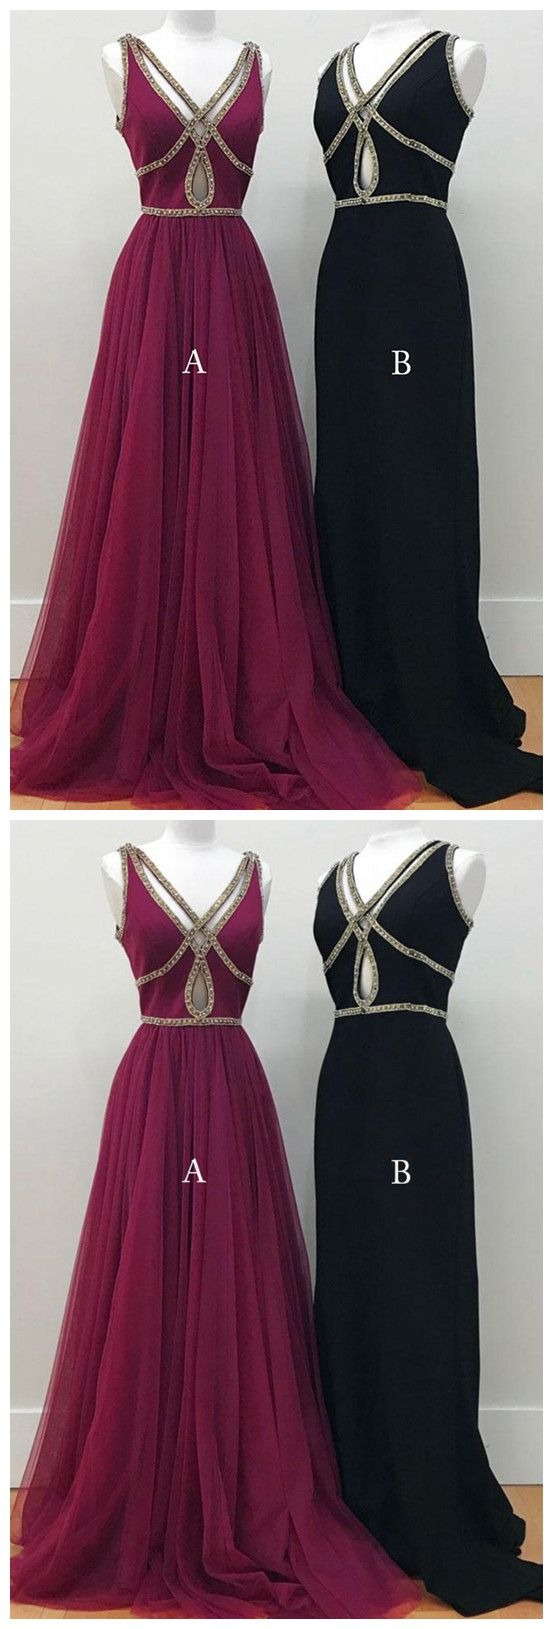 Prom dressesnew fashion prom dressessimple hollow out long v neck